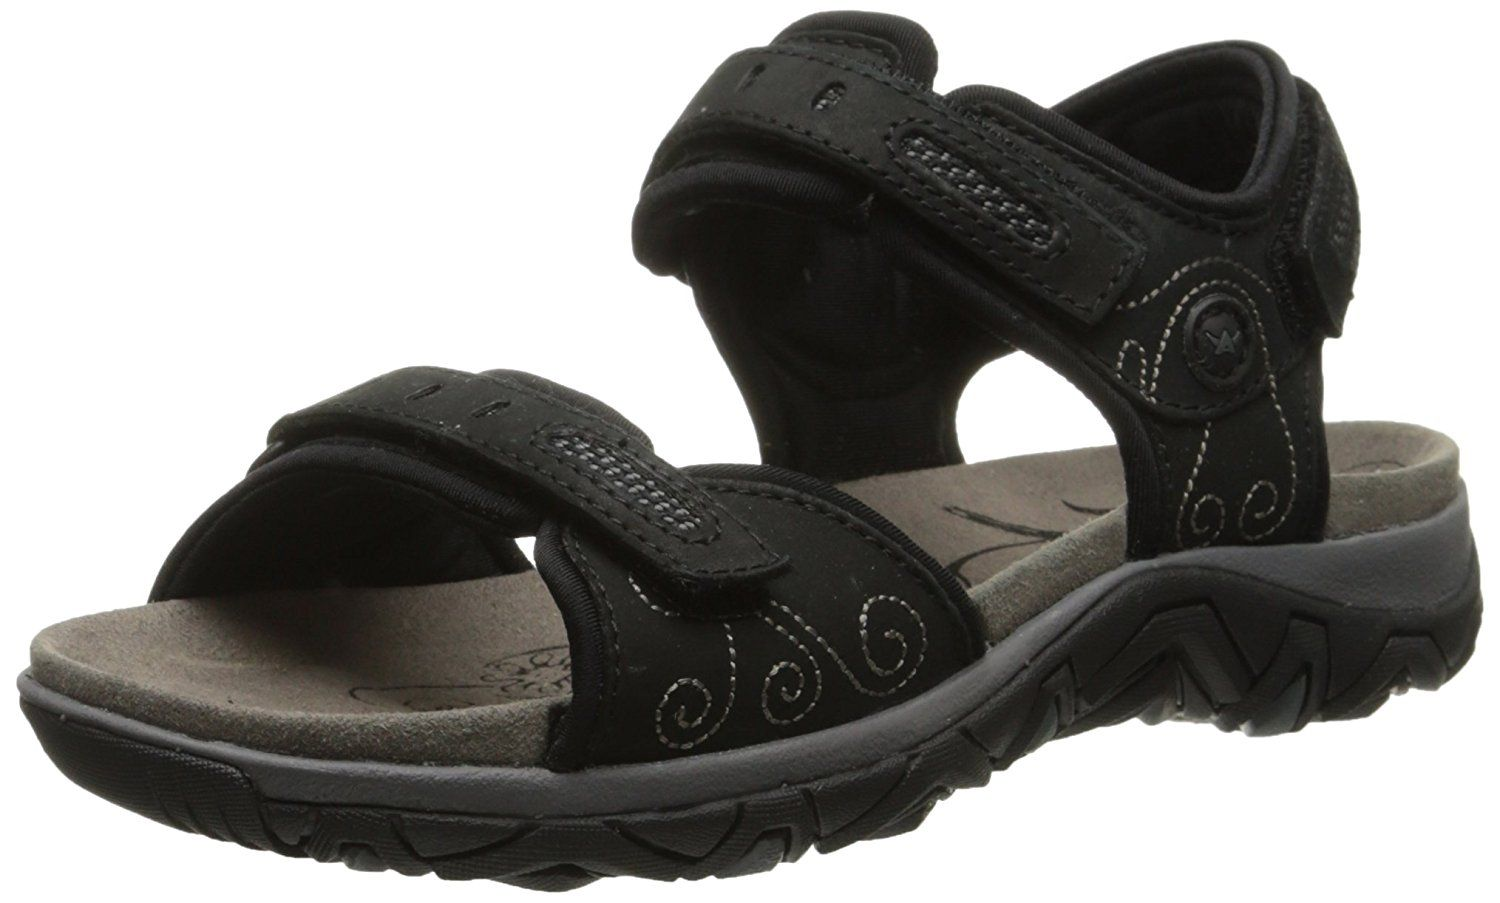 ALLROUNDER by MEPHISTO Women's Lagoona Ankle-Strap Sandal * You can get additional details at the image link.